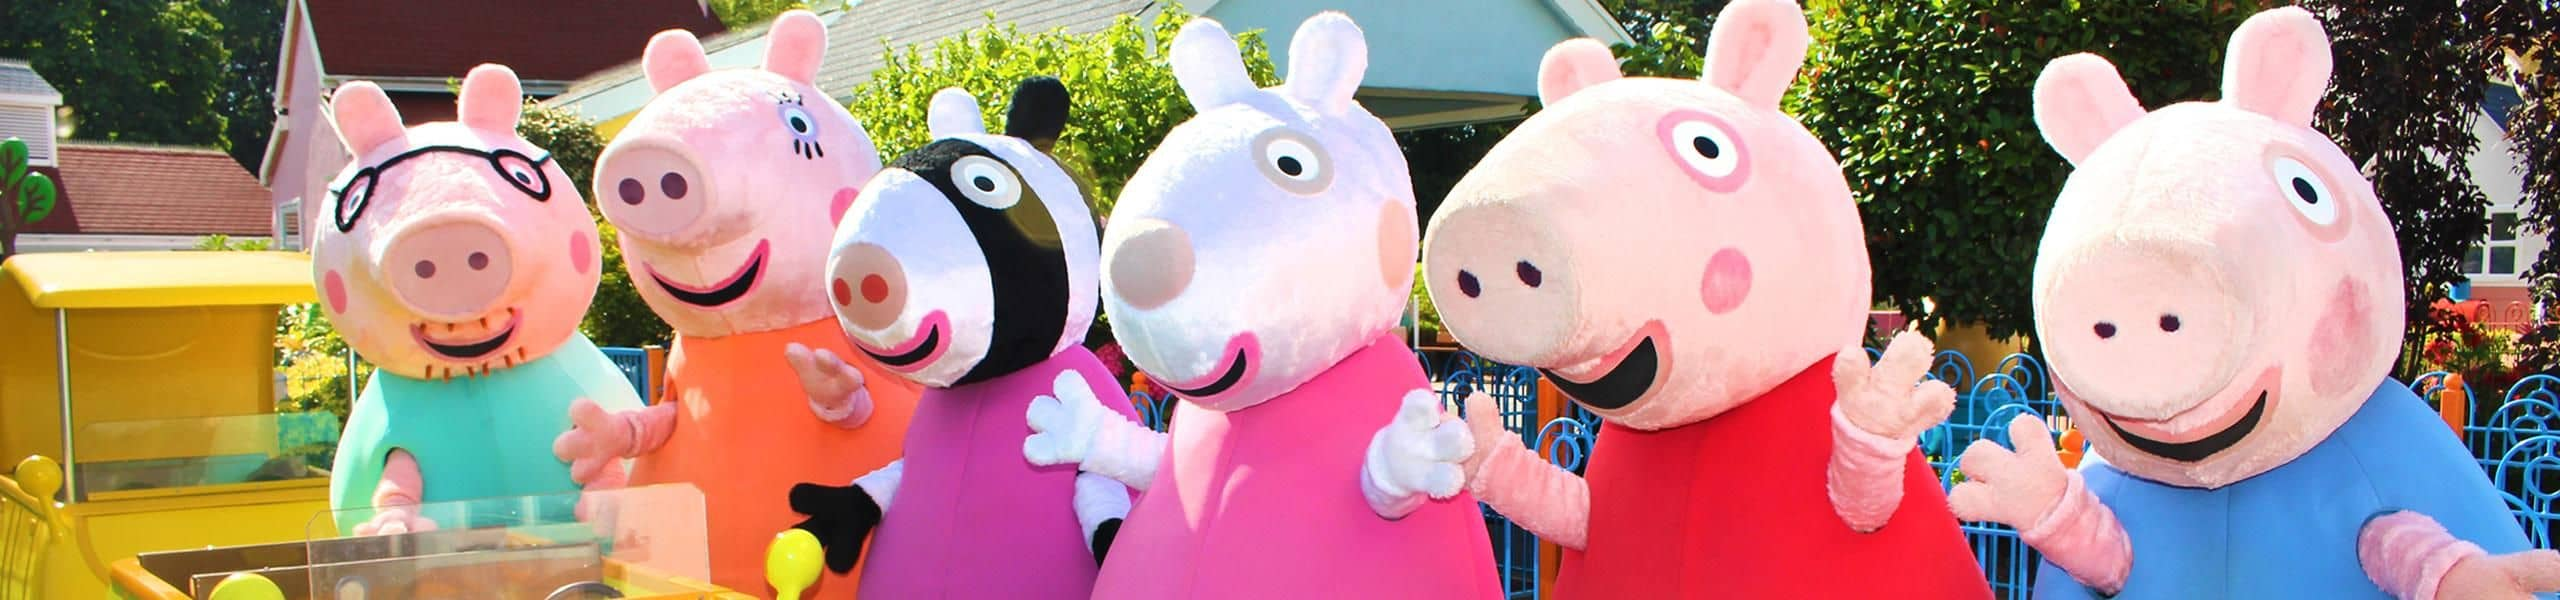 Meet Peppa Pig and Friends